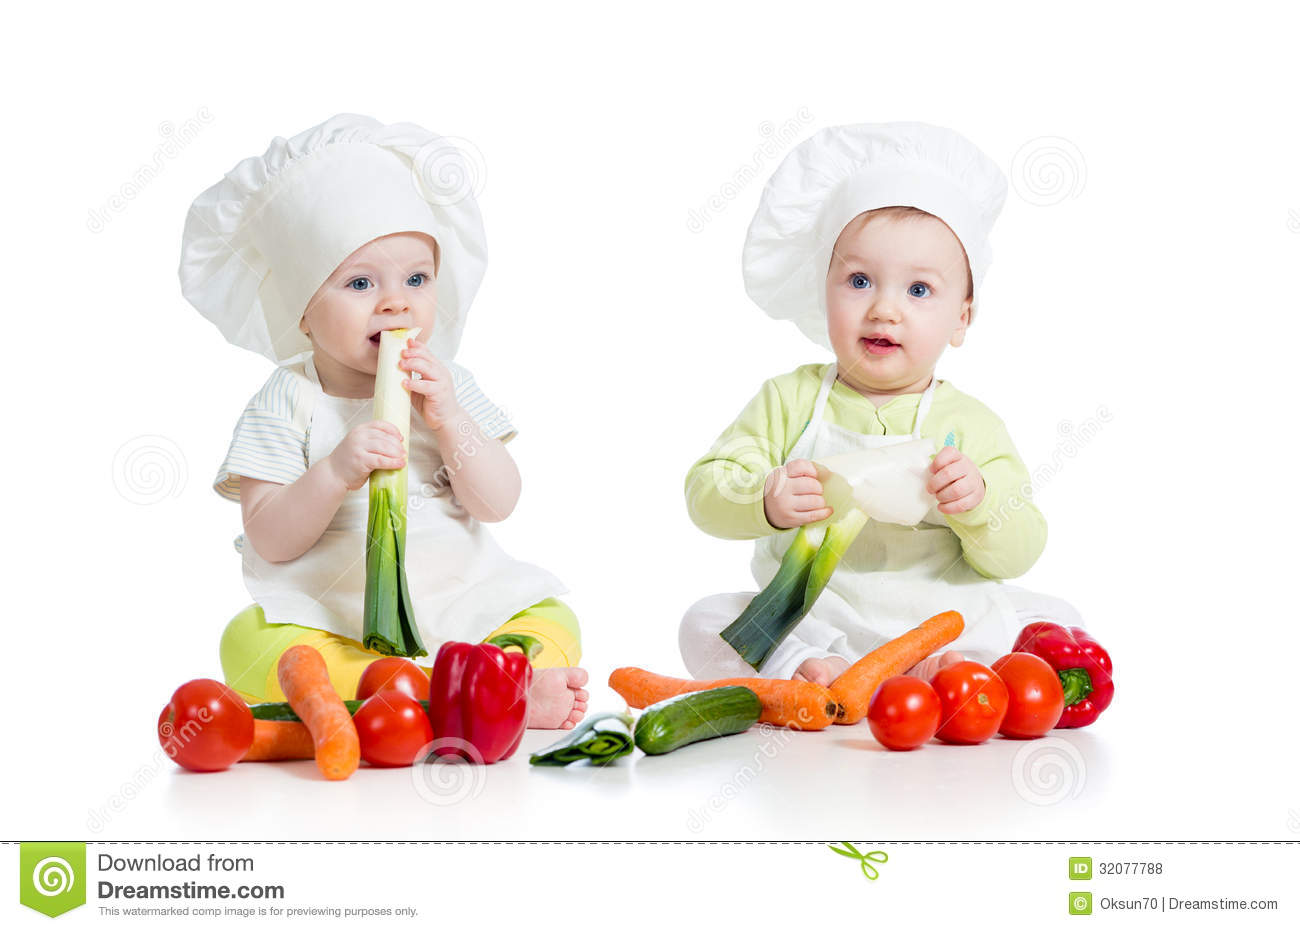 Girl And Boy Sitting Together Wallpaper Babies Boy And Girl With Healthy Food Vegetables Royalty